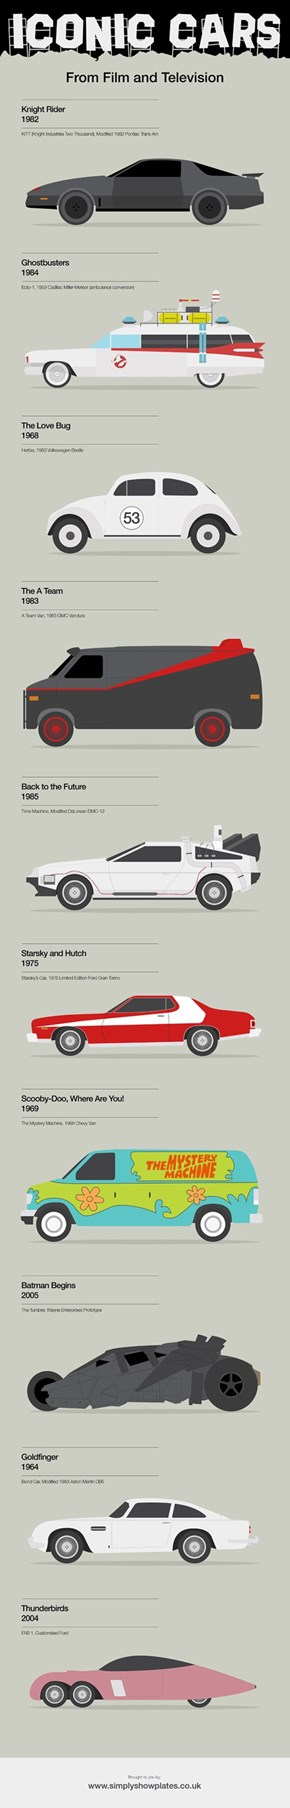 Iconic Cars from Film and Television